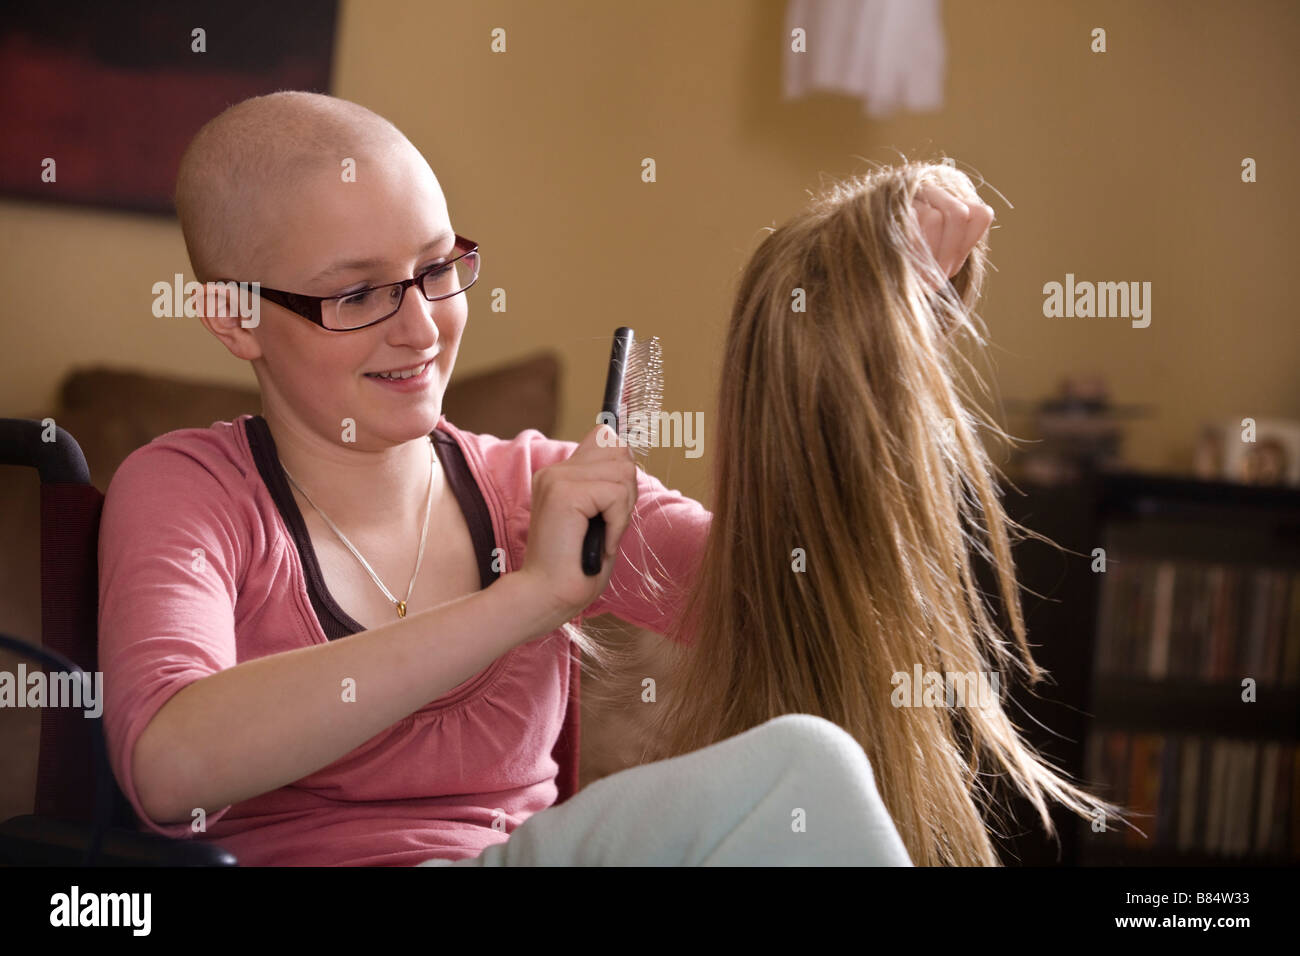 Girl brushing perruque Photo Stock